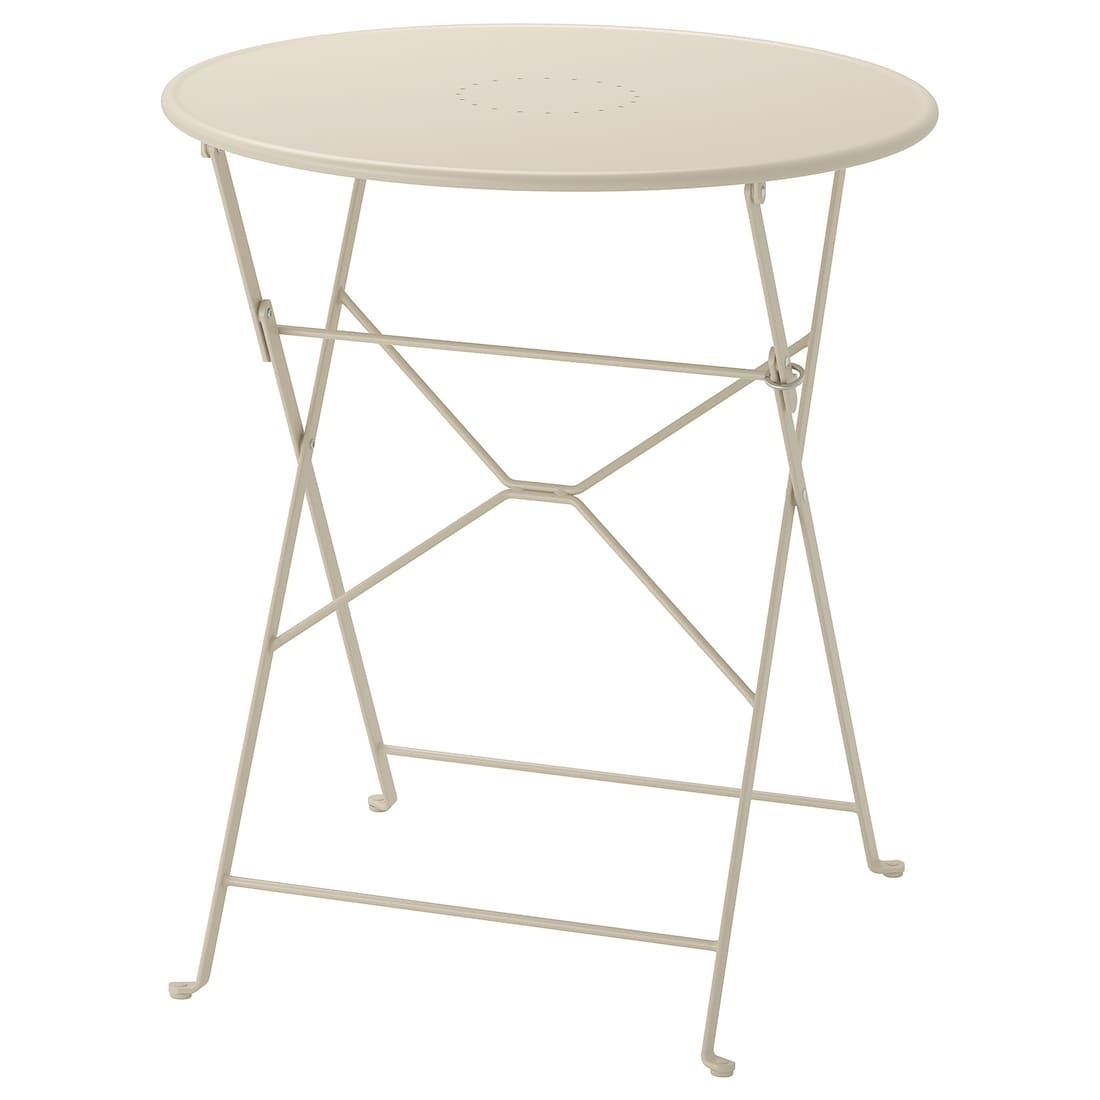 SALTHOLMEN Table, outdoor – foldable beige – IKEA